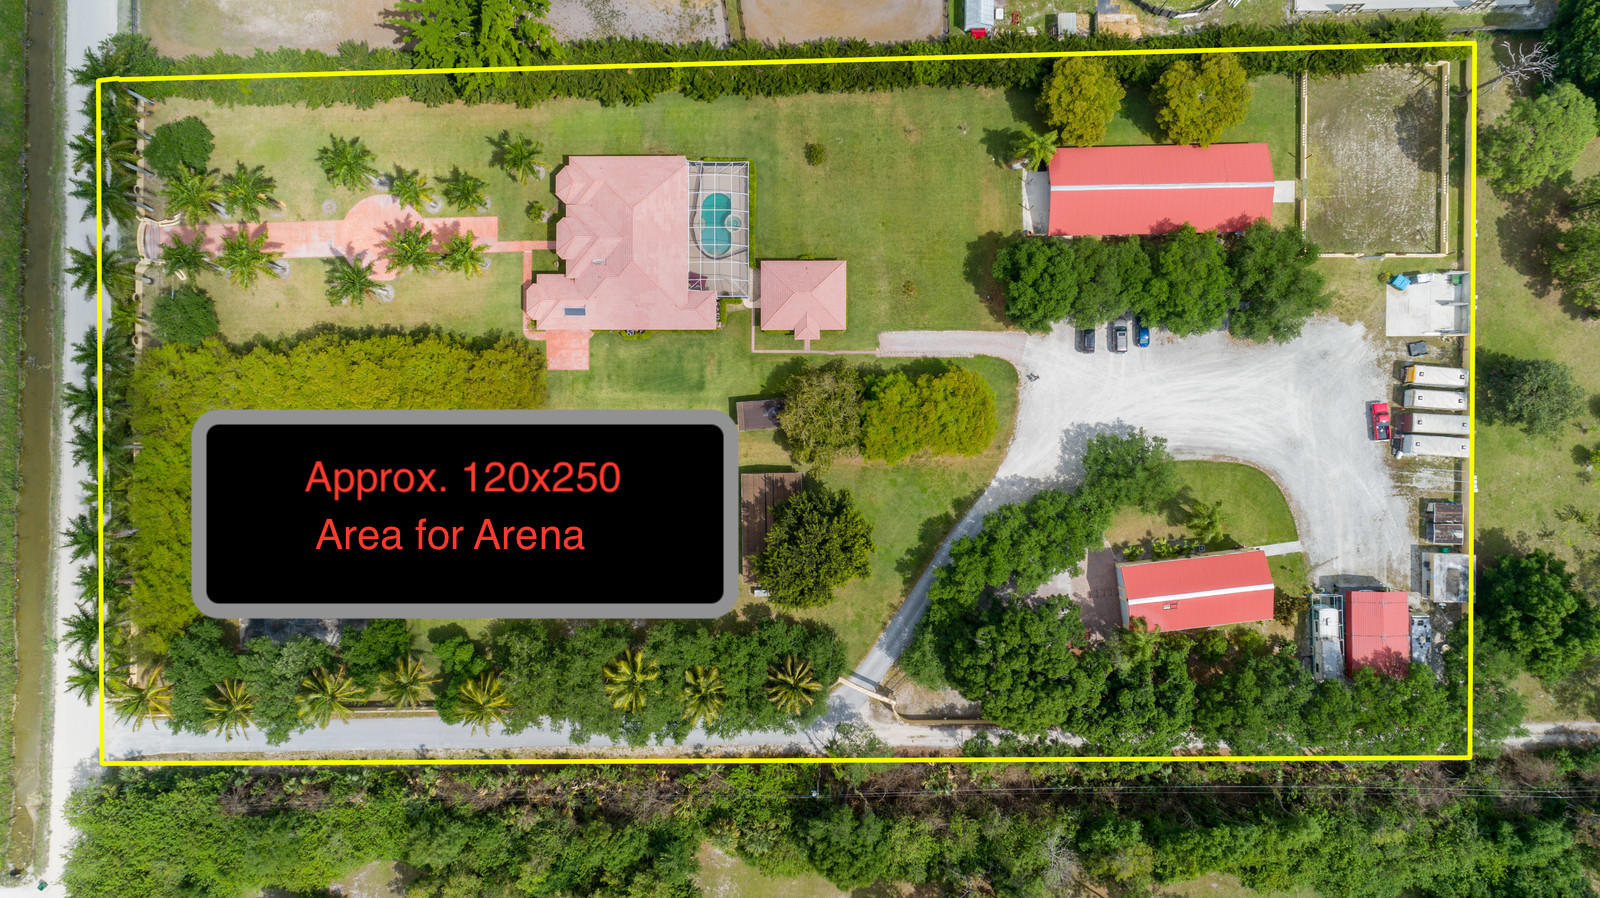 45_2880_B_Road_Aerial_with_Property_Bord